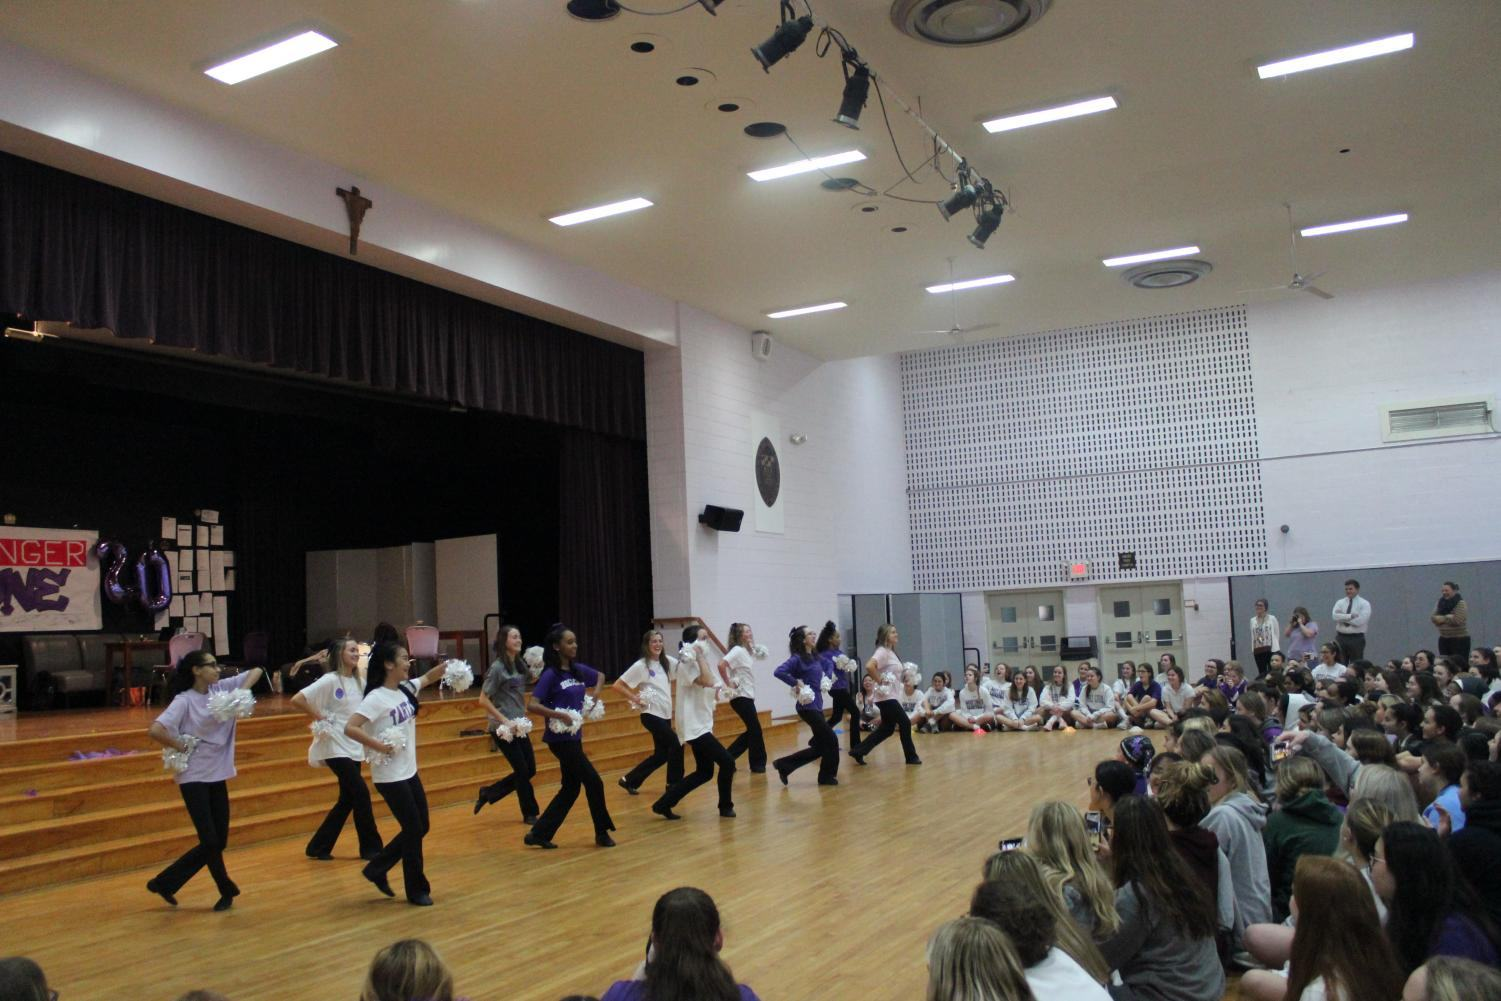 Poms performing a routine at the pep rally.